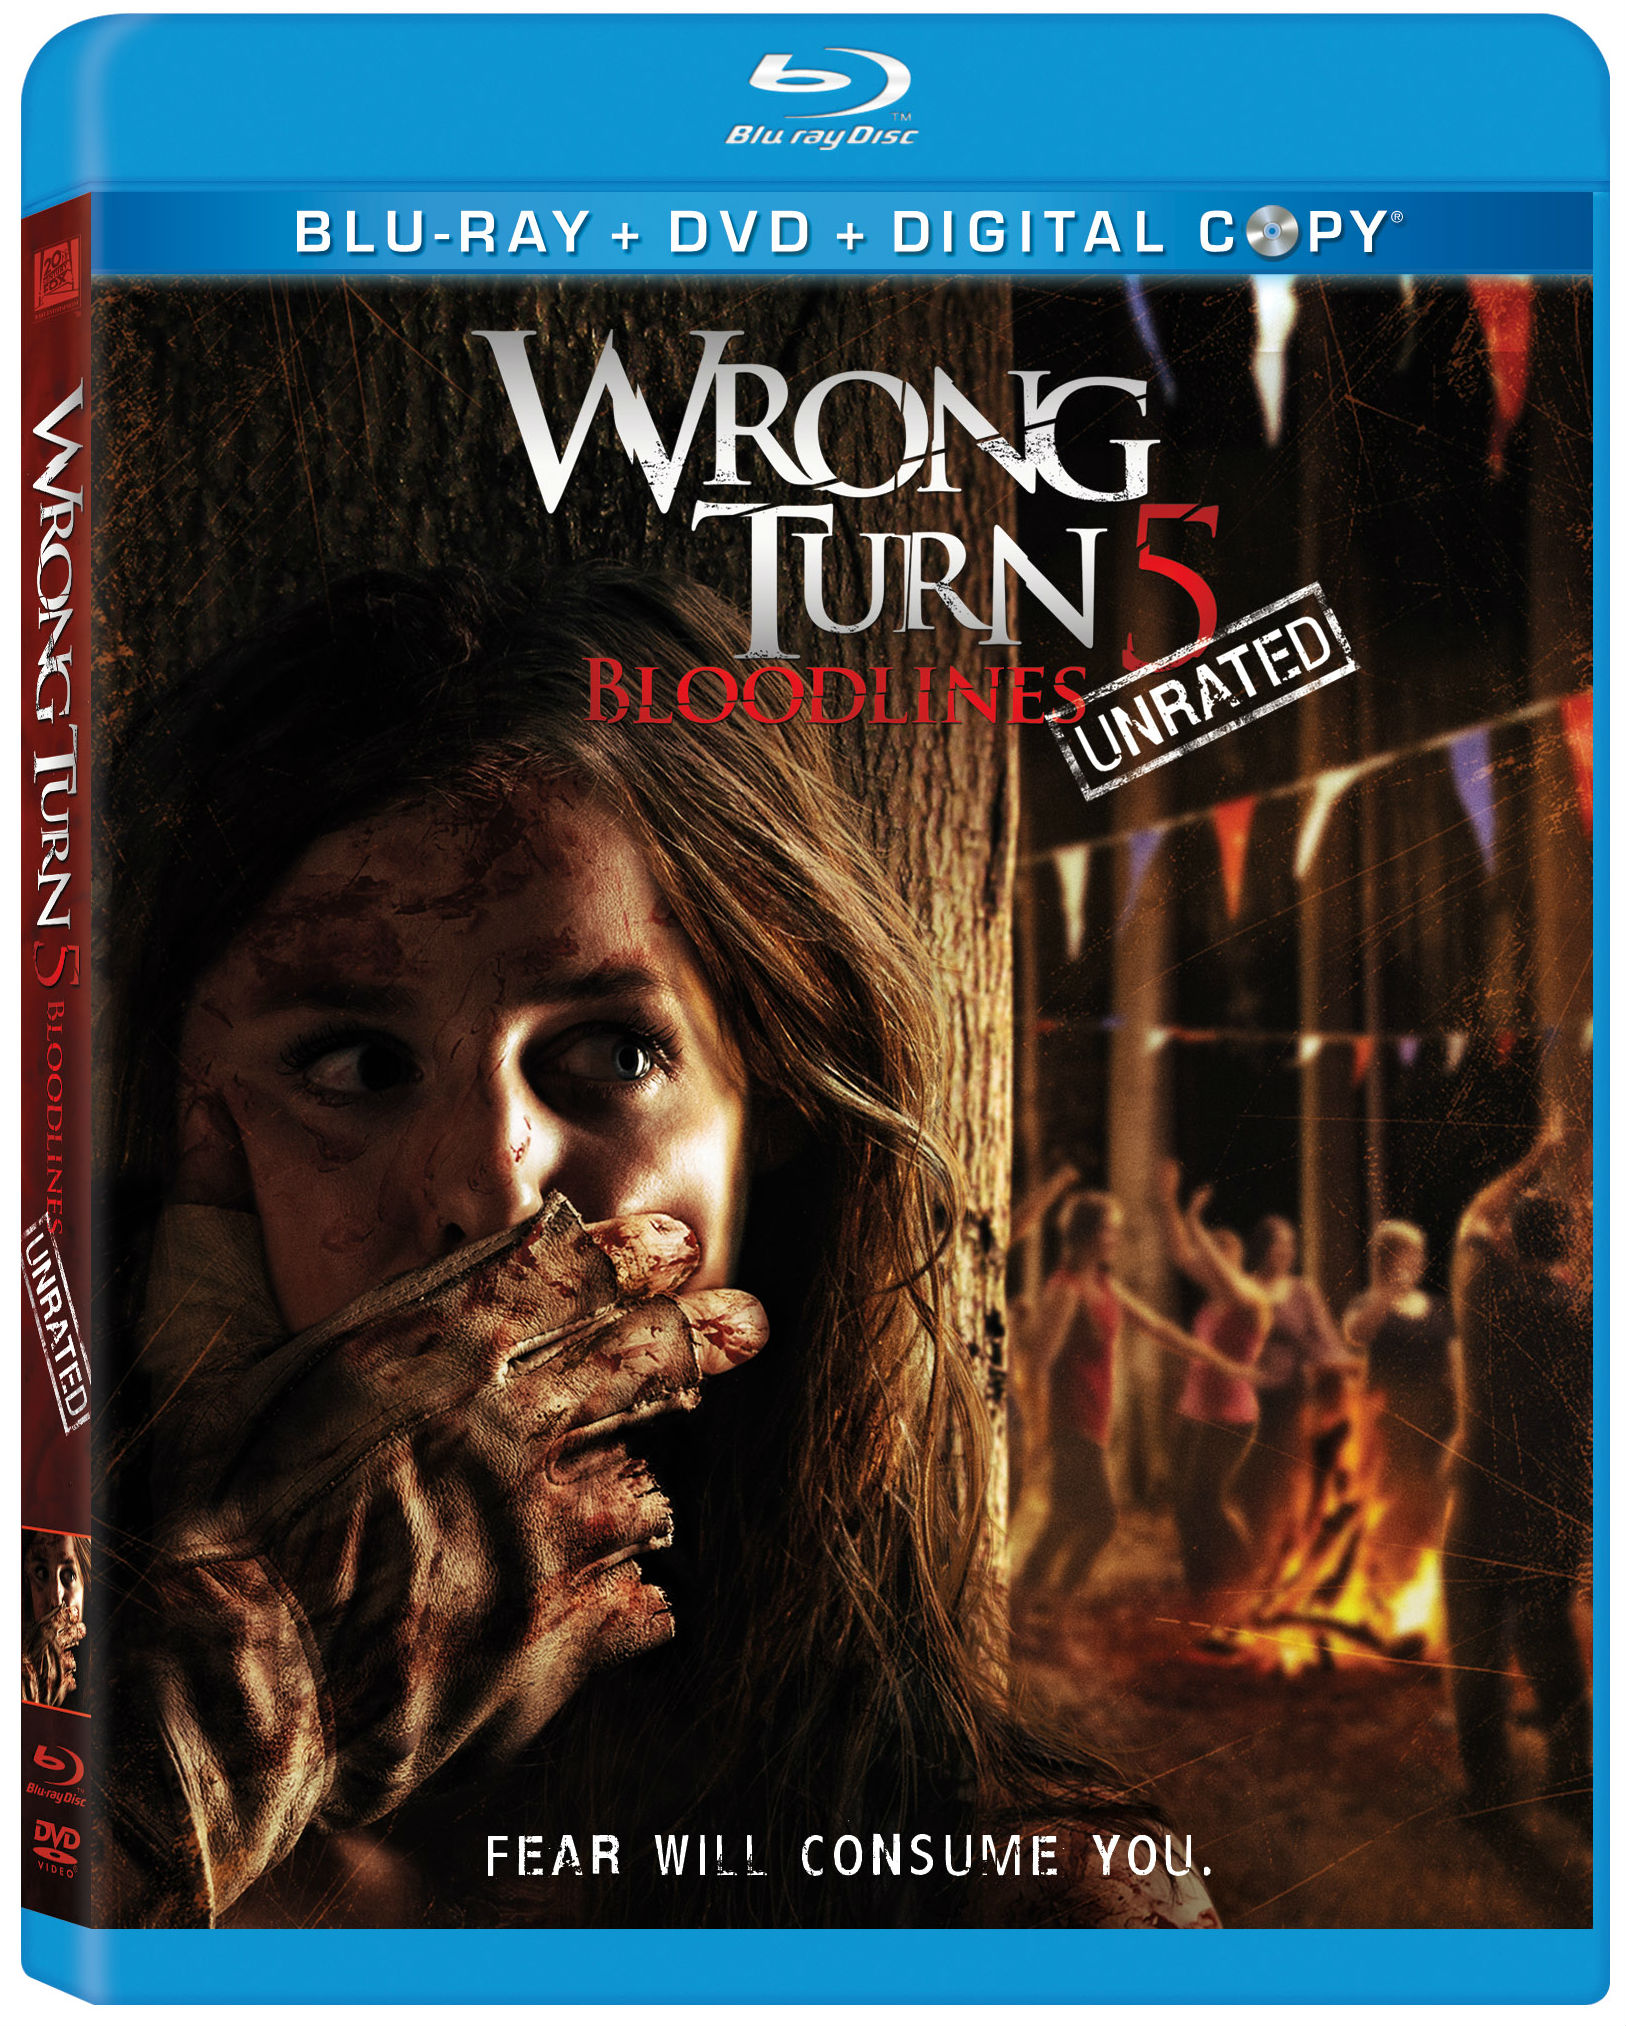 wrong turn 5 bloodlines download in hindi